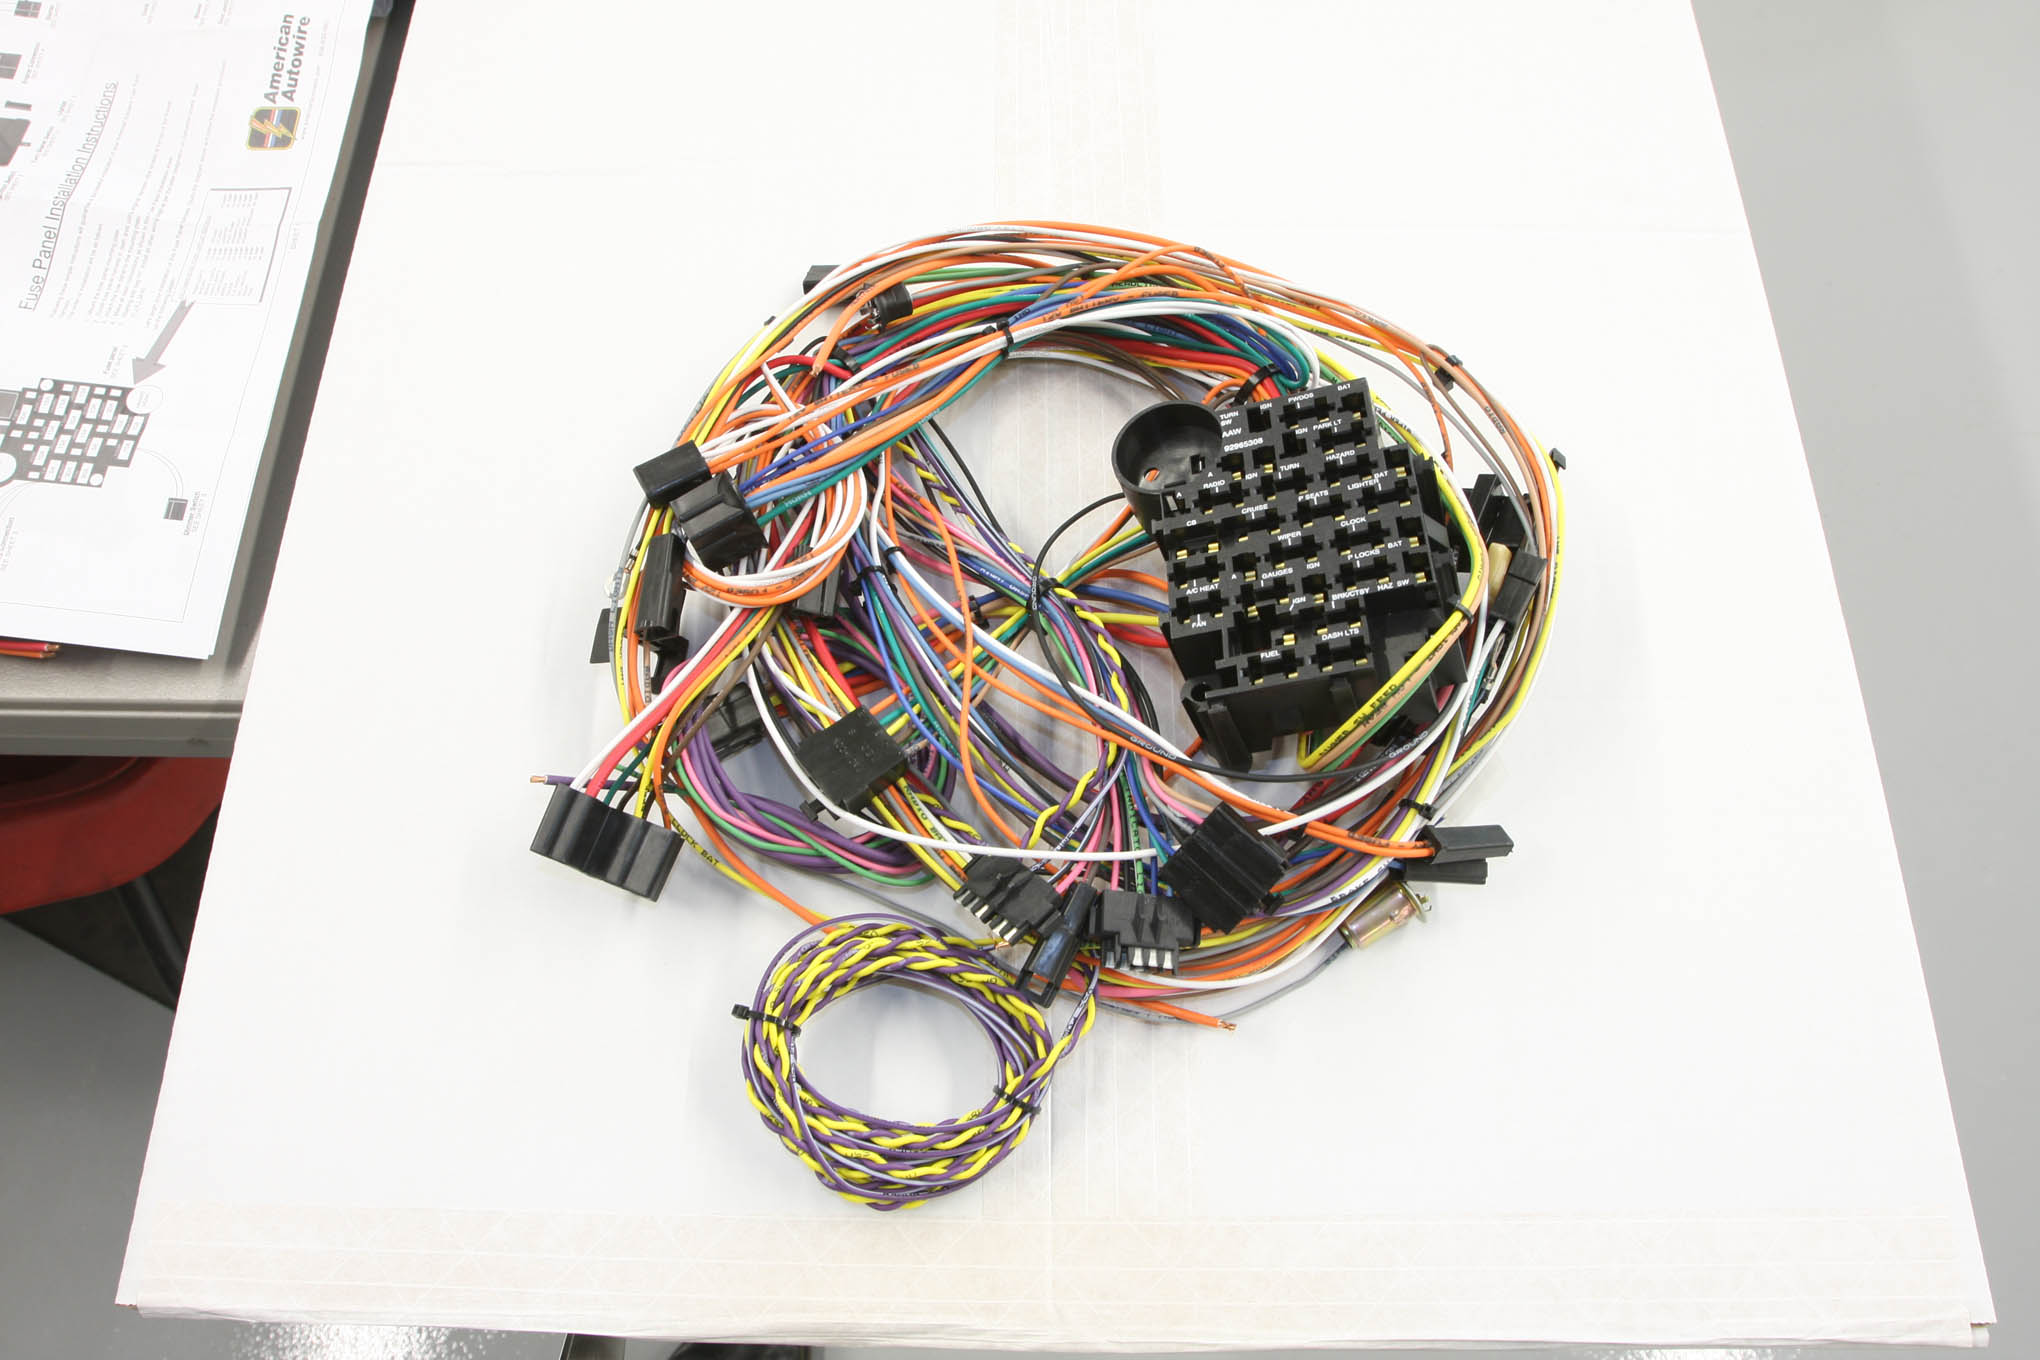 To update the wiring in his 1955 Chevrolet, Manson chose a replacement harness from American Autowire. Keep in mind, extra circuits allow the addition of electrical accessories at a later date.